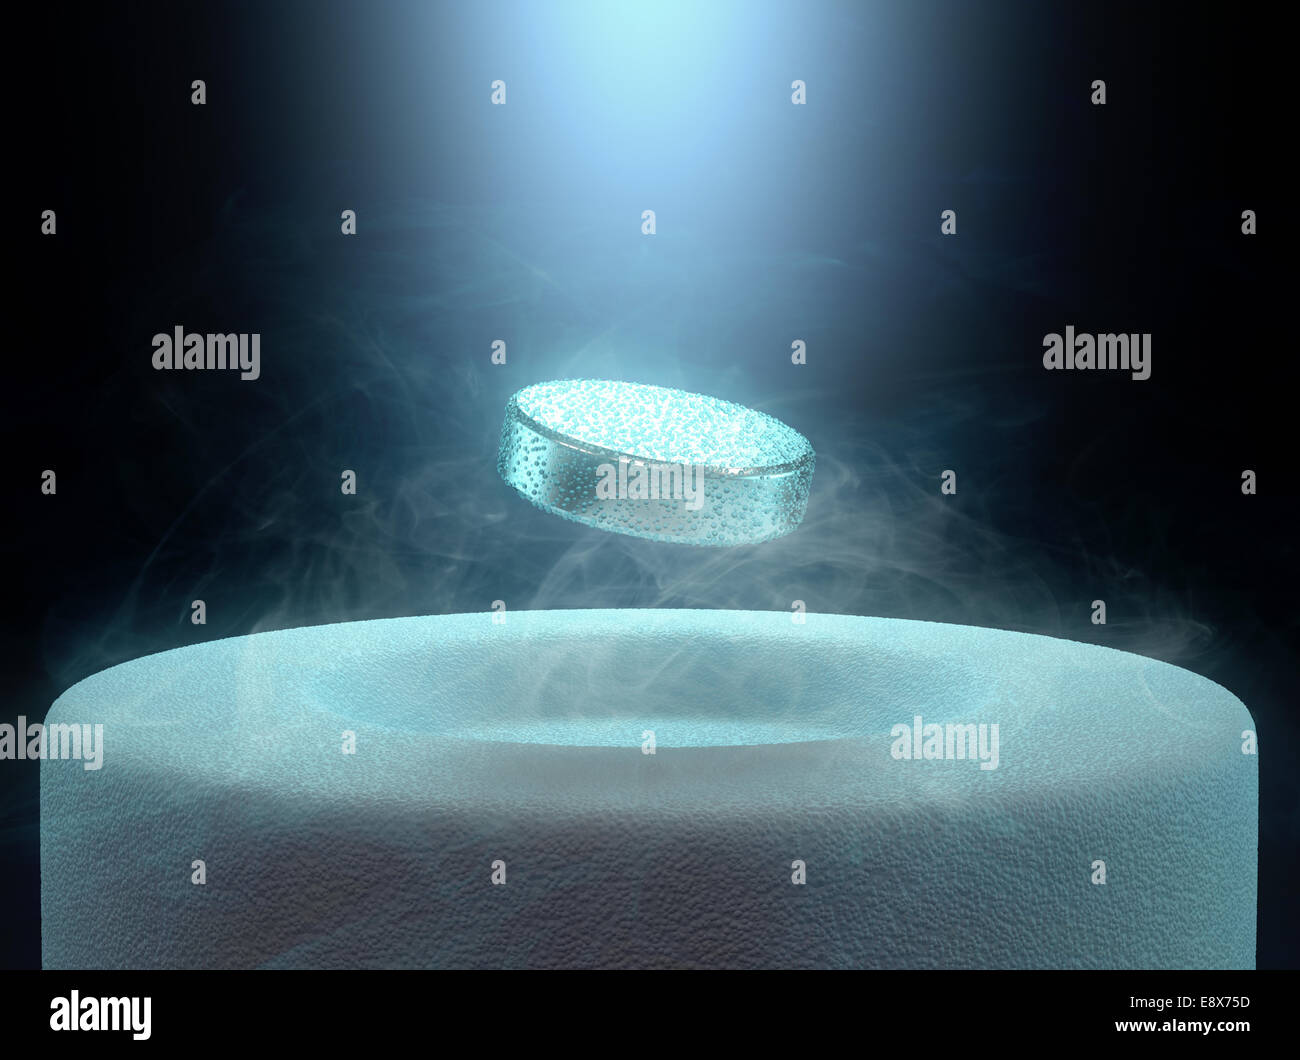 Image concept of magnetic levitating above a high-temperature superconductor, cooled with liquid nitrogen. - Stock Image